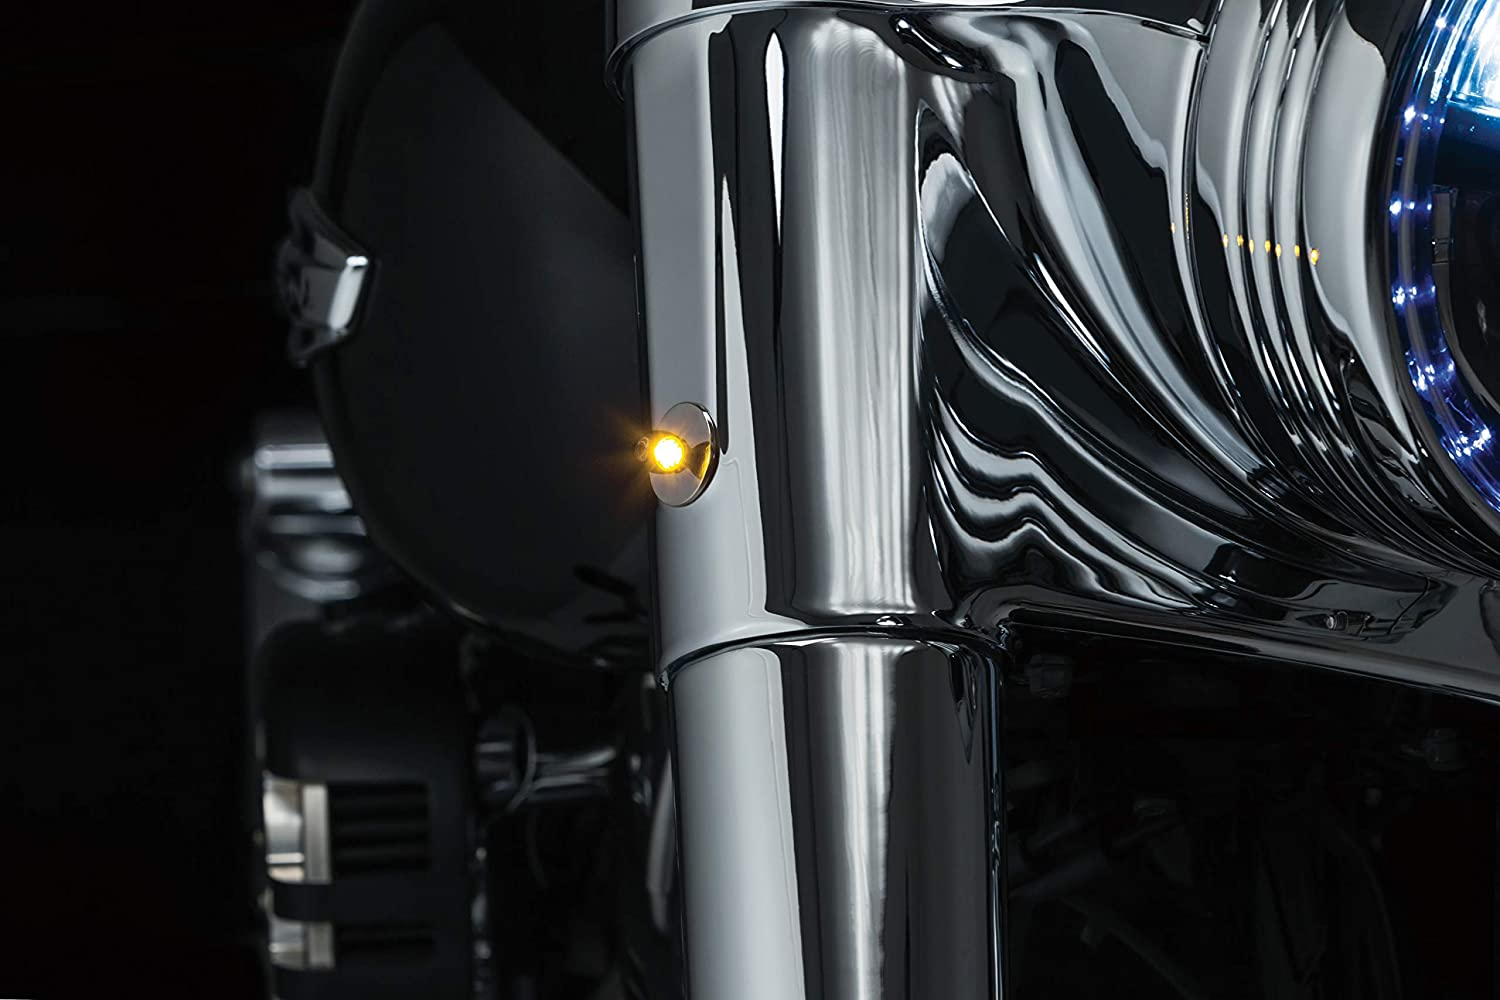 Satin Black Kuryakyn 2535 Motorcycle Lighting Accessory: Kellermann Atto Amber Pack of 1 Front//Rear LED Turn Signal//Blinker Light with Clear Lens